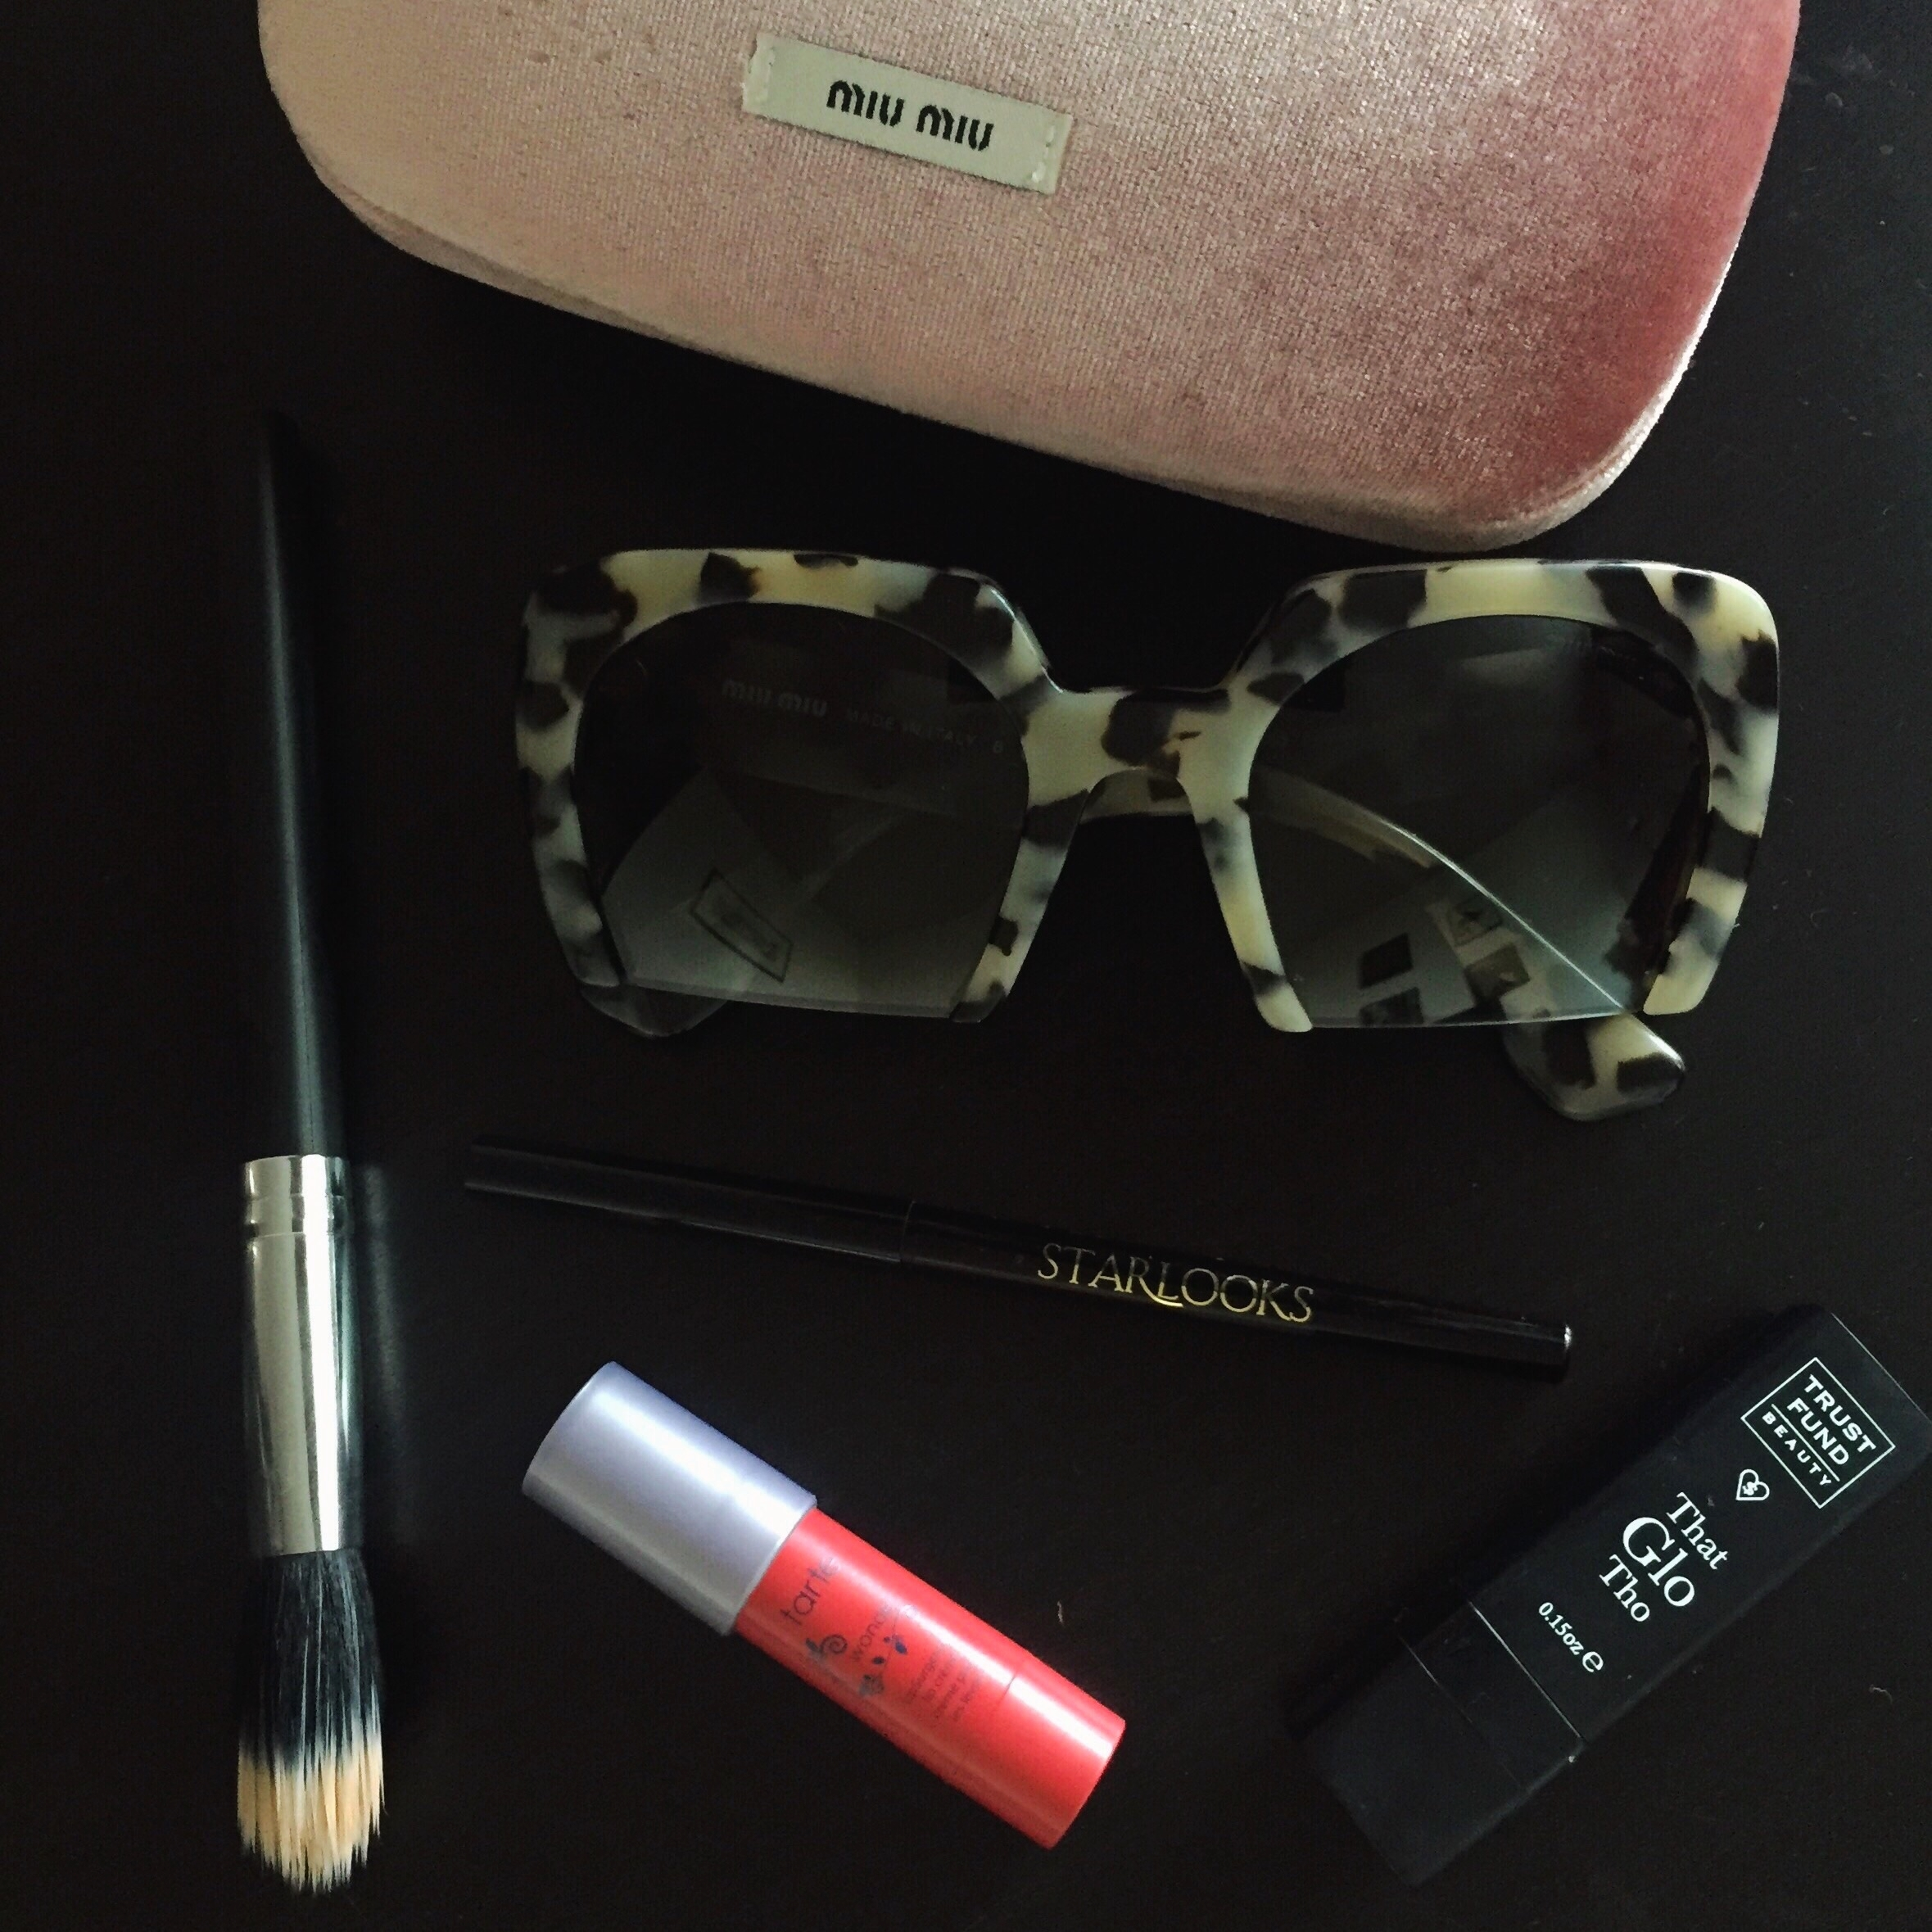 April-Ipsy-Products.jpg